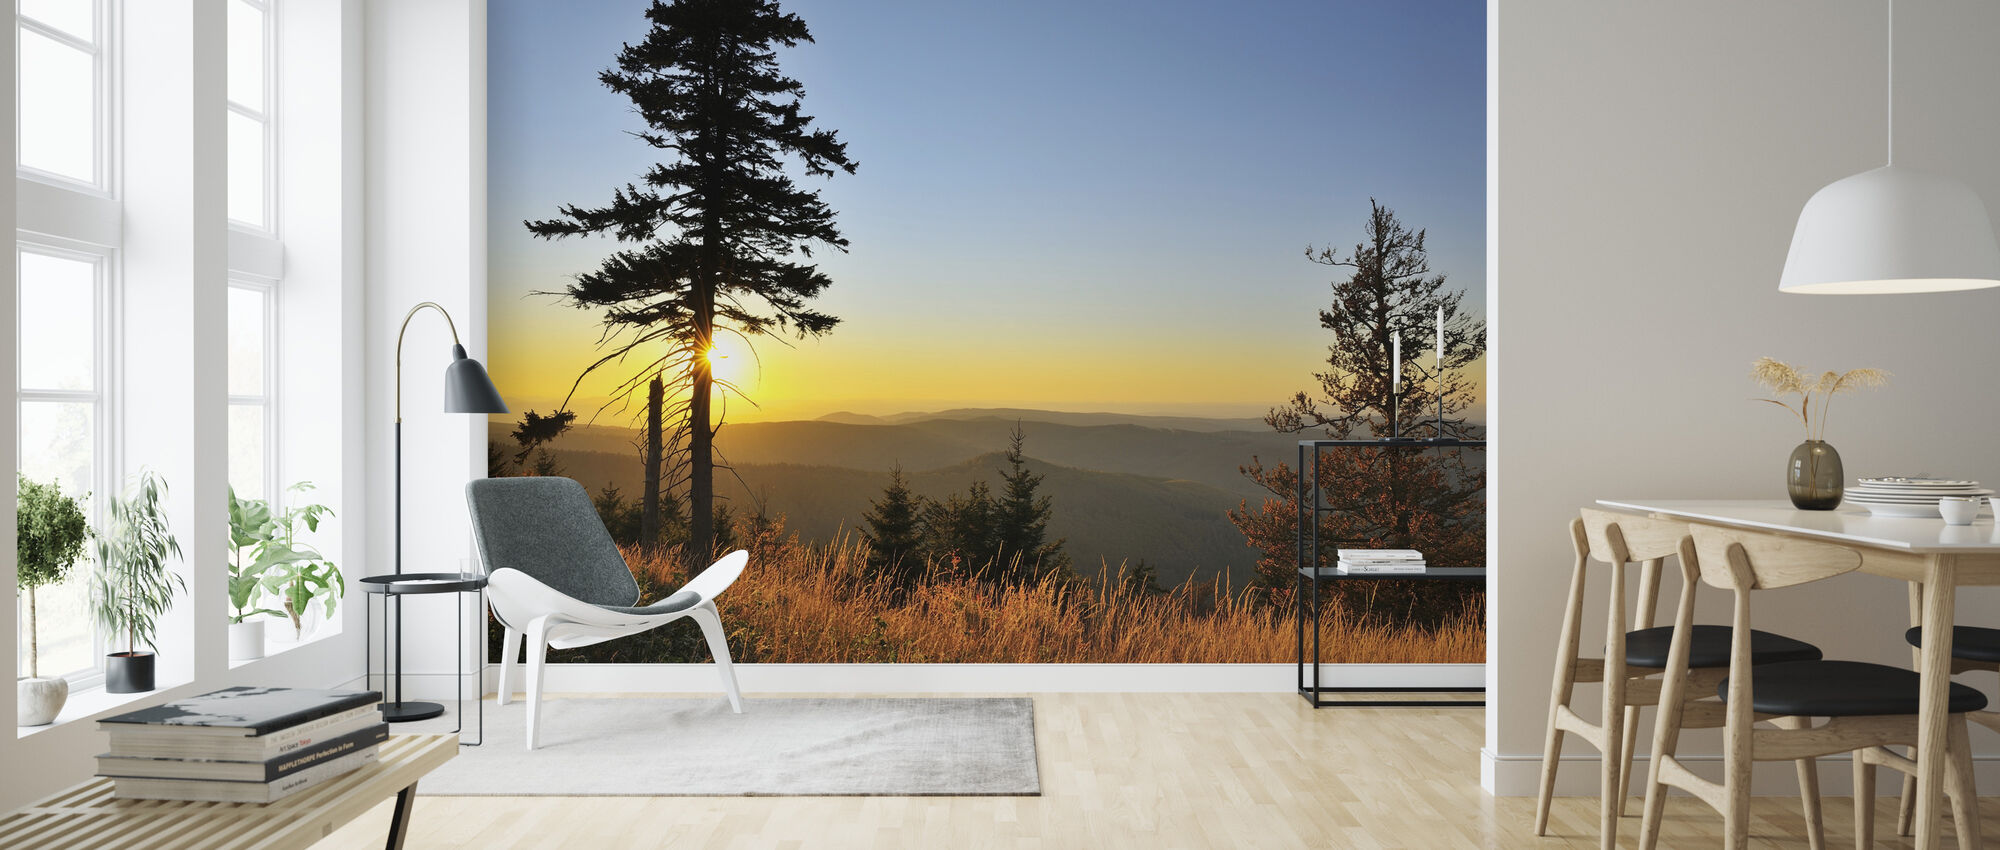 Thuringian Forest at Sunset - Wallpaper - Living Room